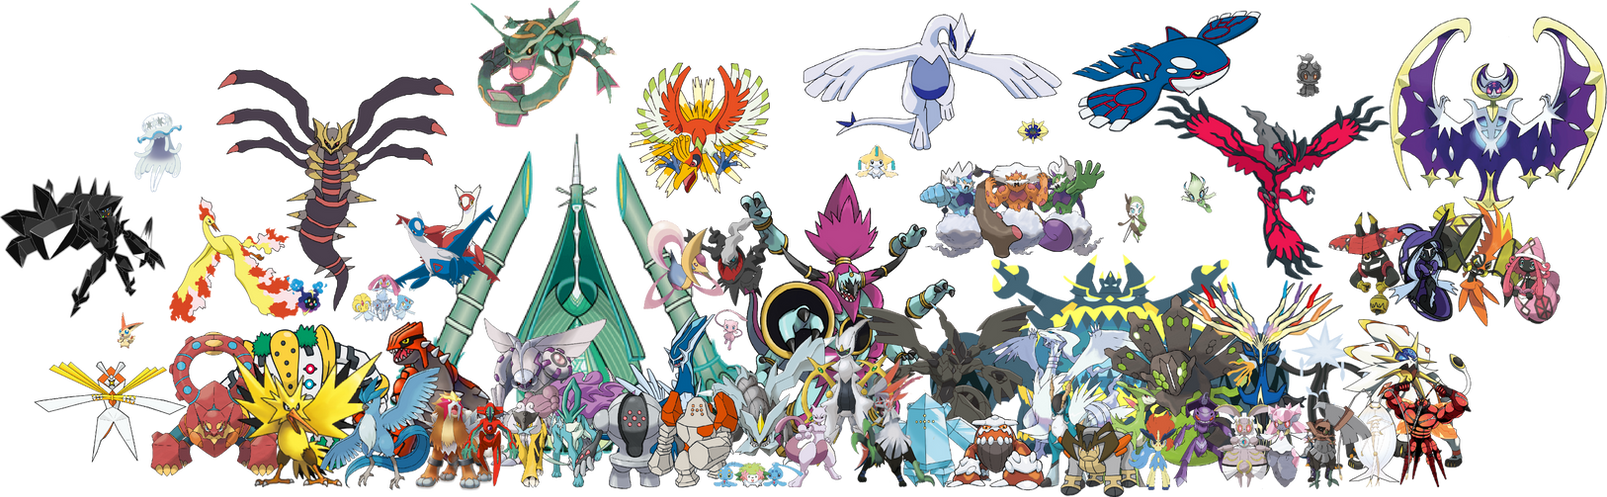 All Legendary Pokemon Names And Pictures